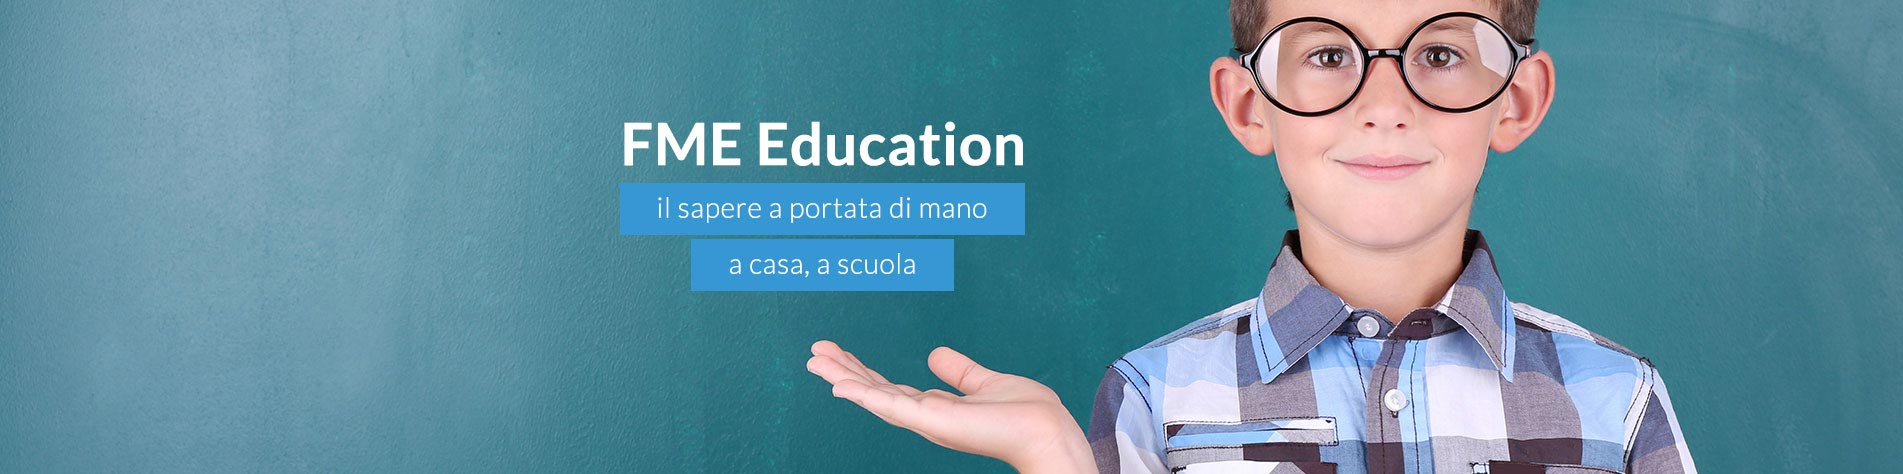 Fme Education